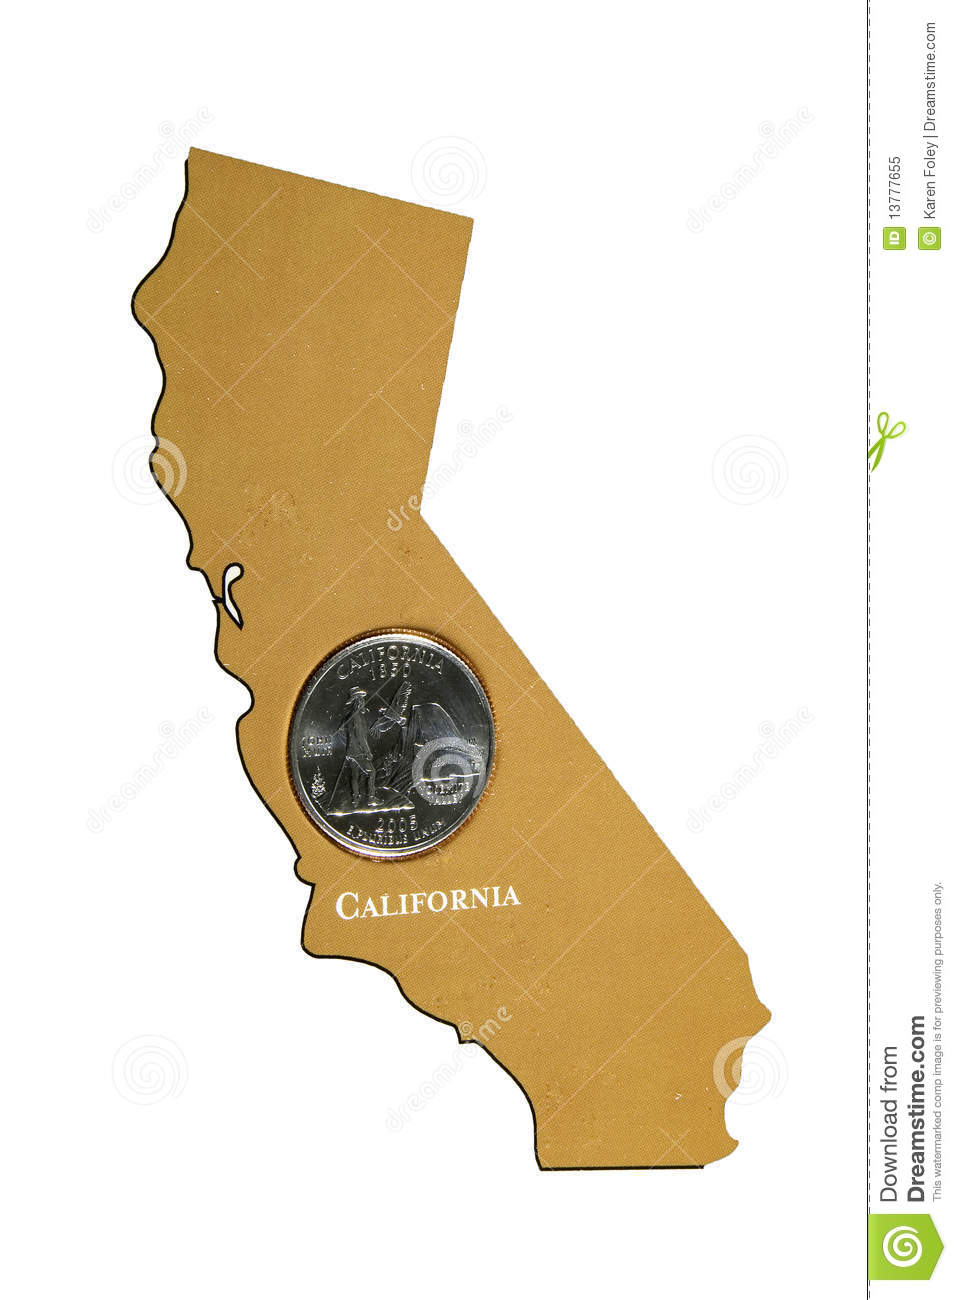 California State Quarter Royalty Free Stock Photo   Image  13777655